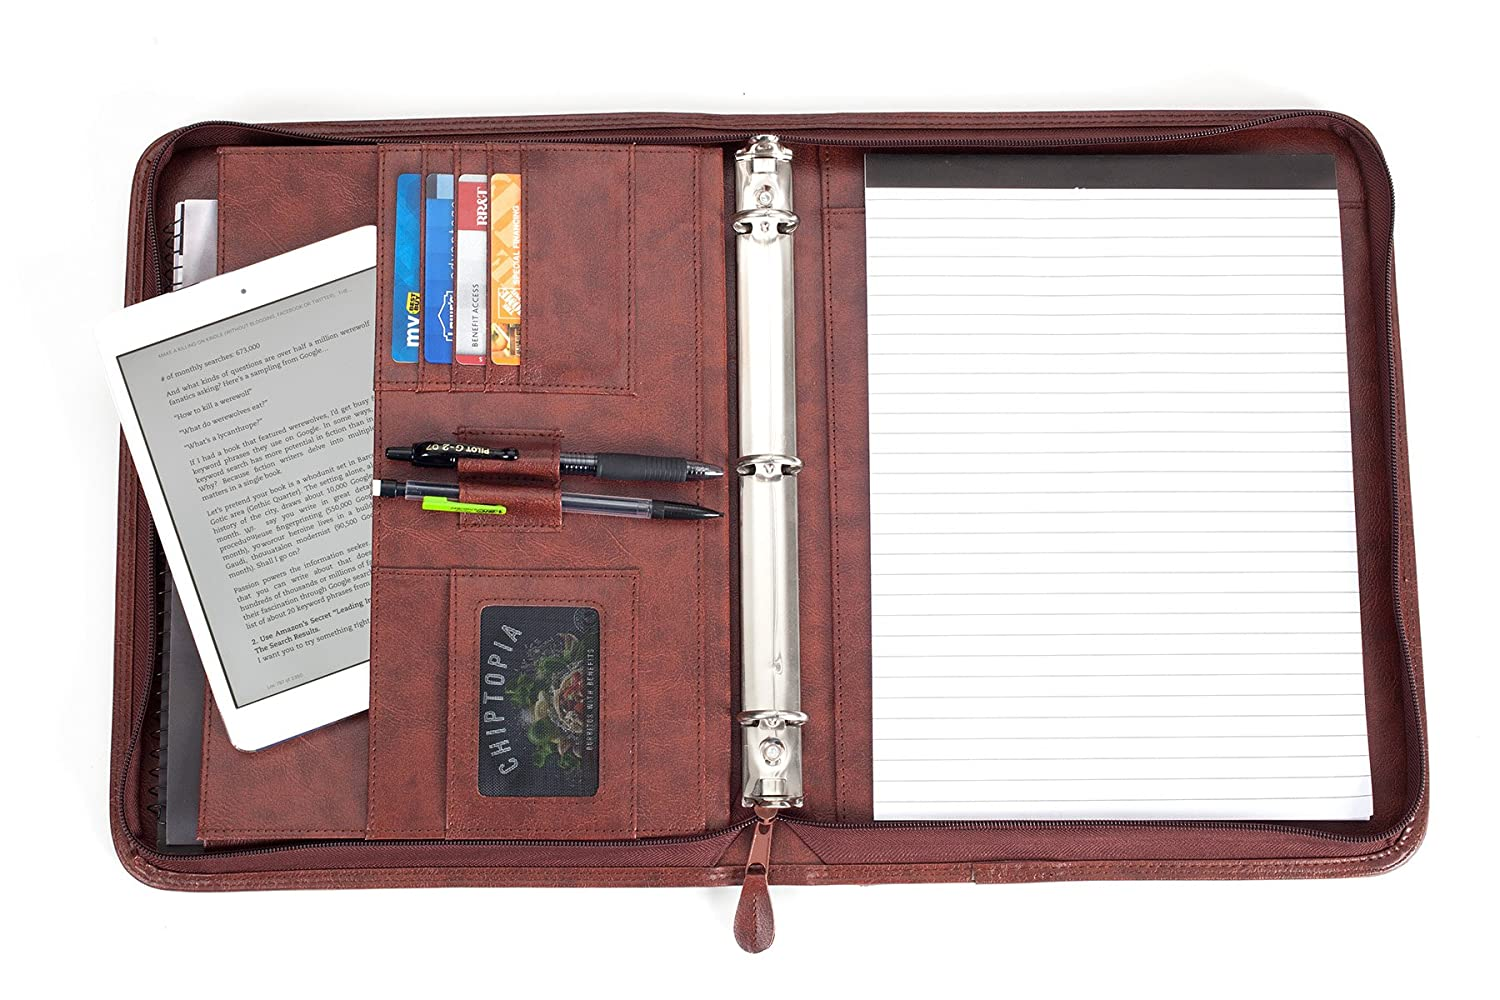 Professional Business Padfolio Portfolio Briefcase Style Organizer Folder with Handles Notepad and 3 Ring Binder – Almond Brown Synthetic Leather Executive Office Solutions